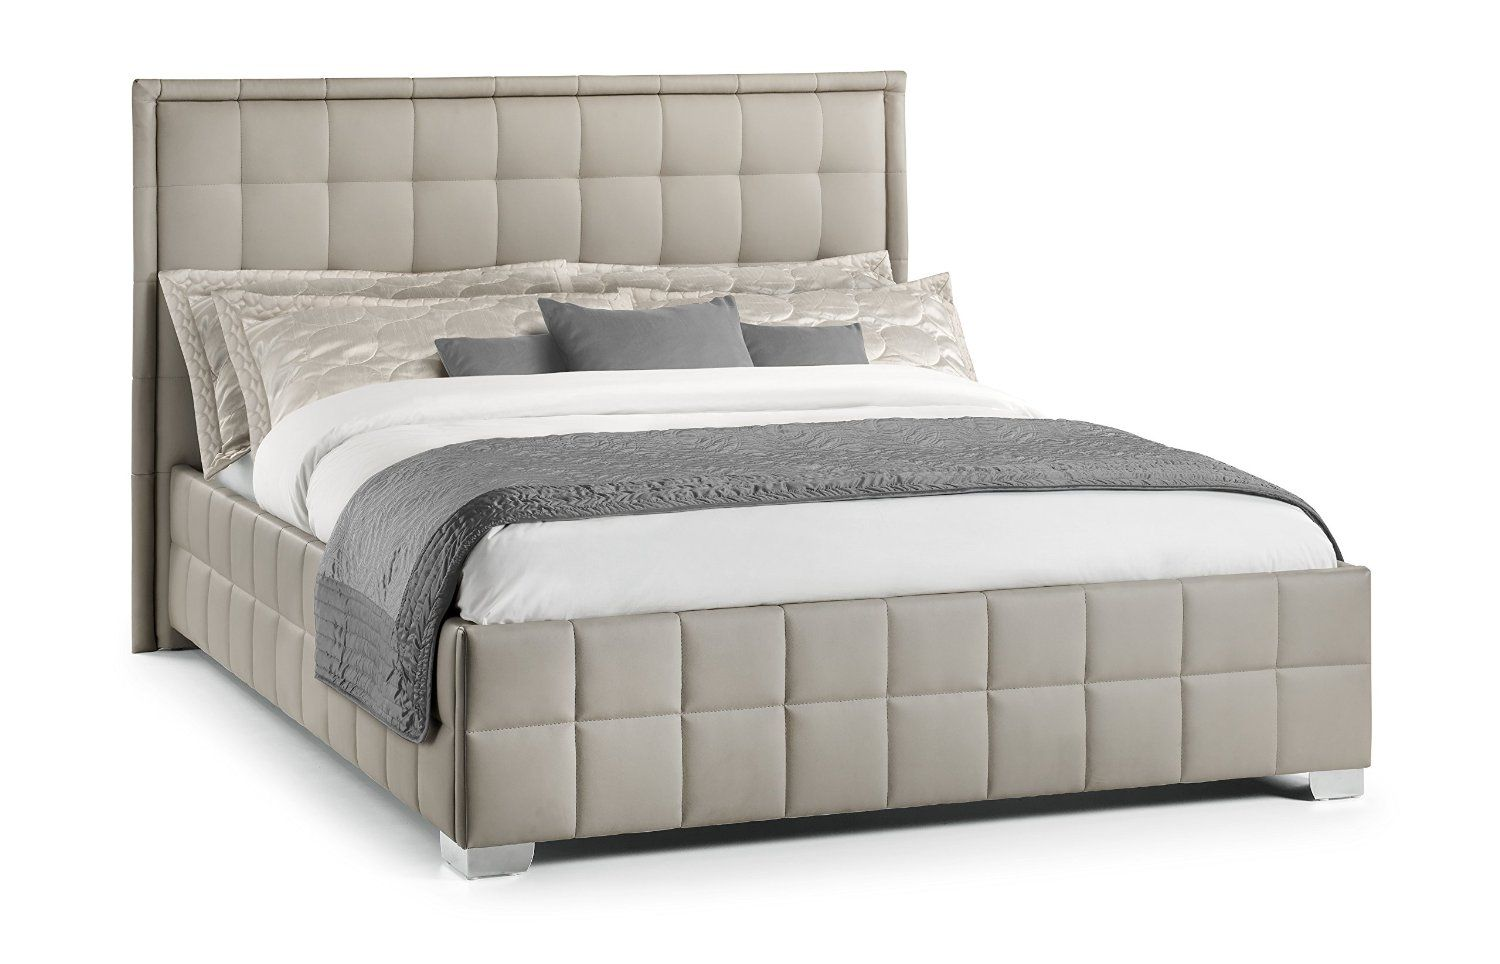 How Big Is A Queen Size Bed Uk Julian Bowen Knightsbridge Faux Leather Double Bed Taupe Amazon